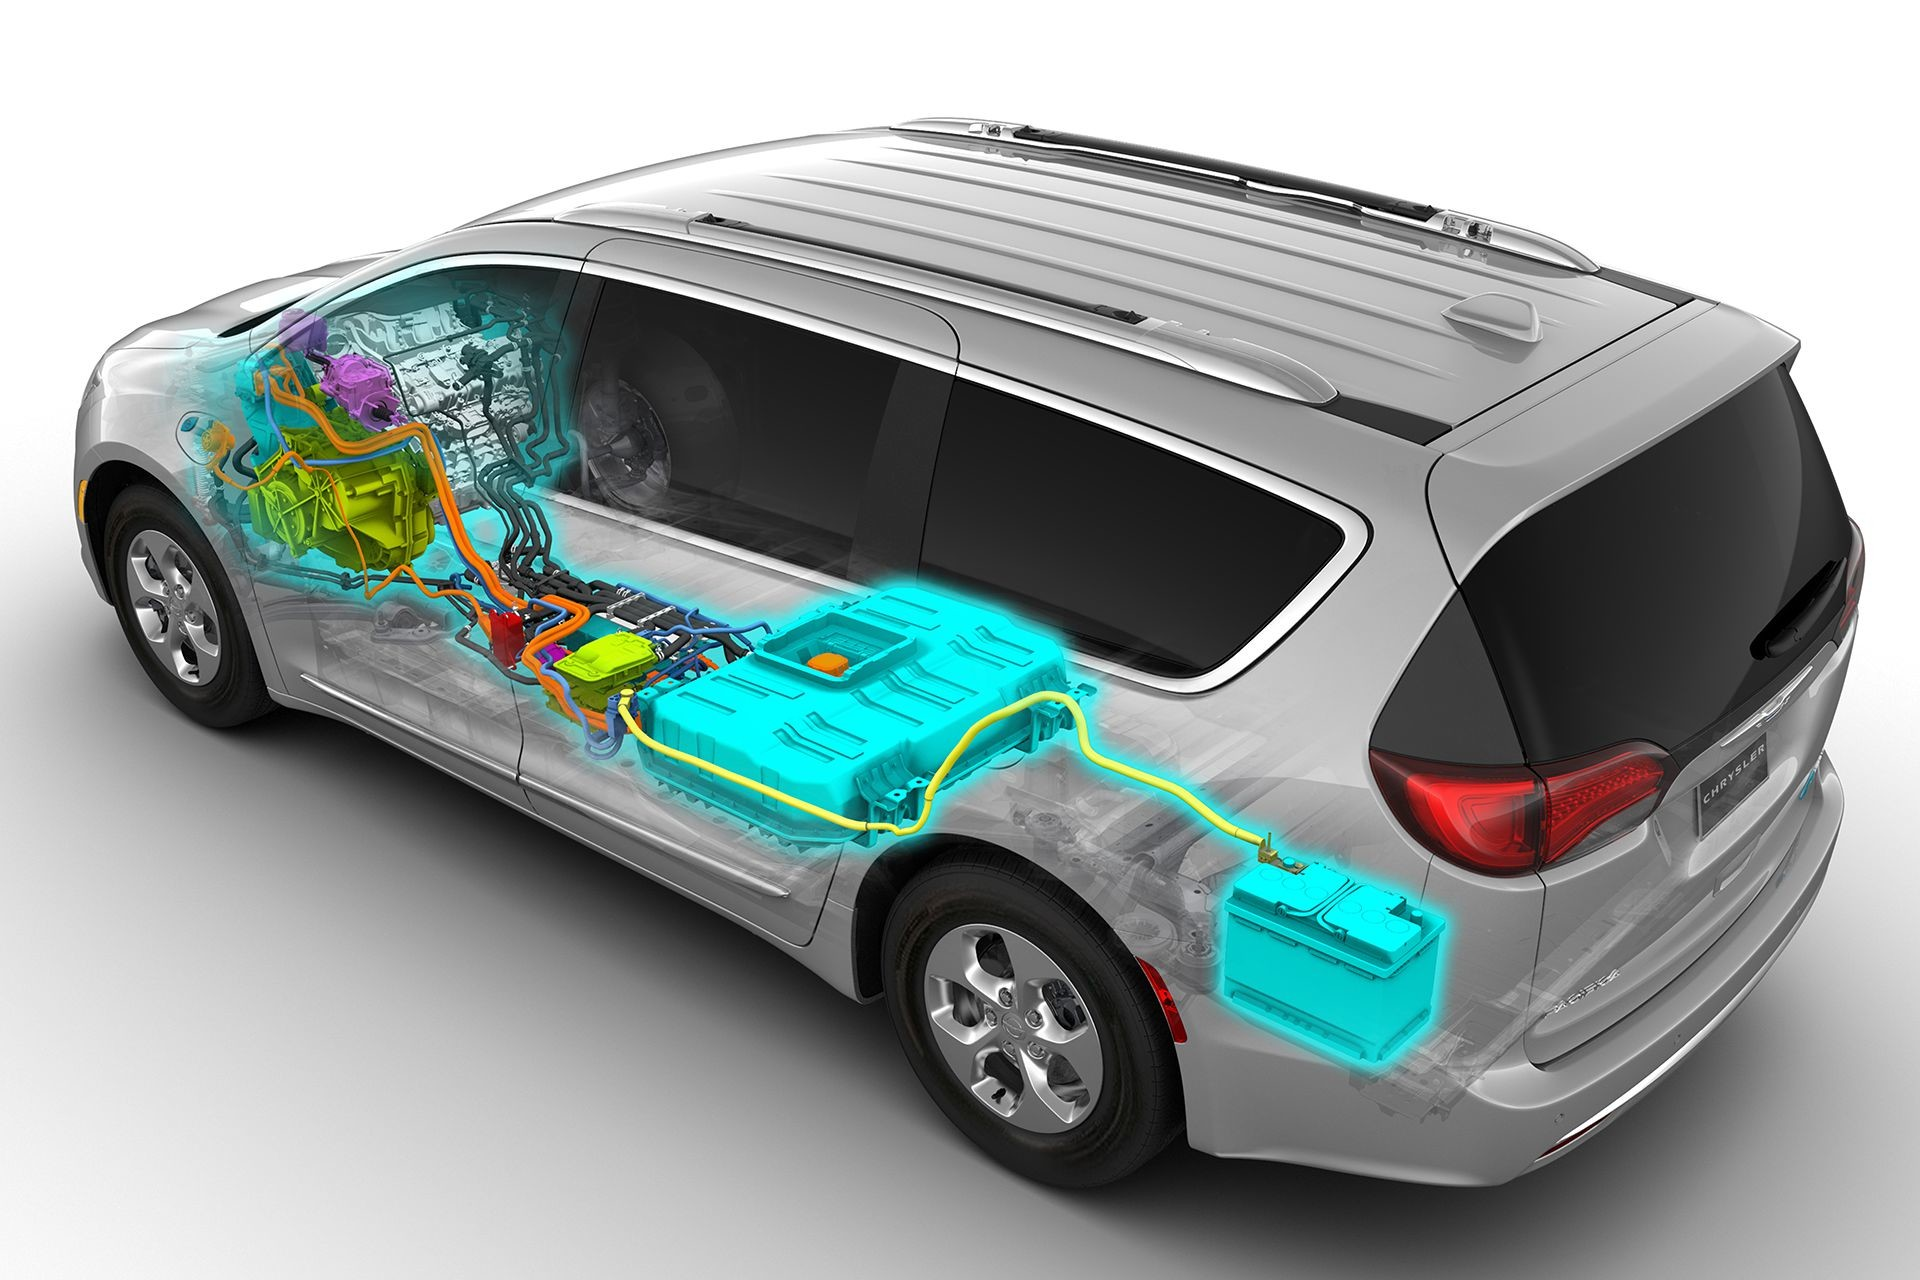 Chrysler Pacifica Hybrid 2018 Exterior Studio Engine Electric Battery